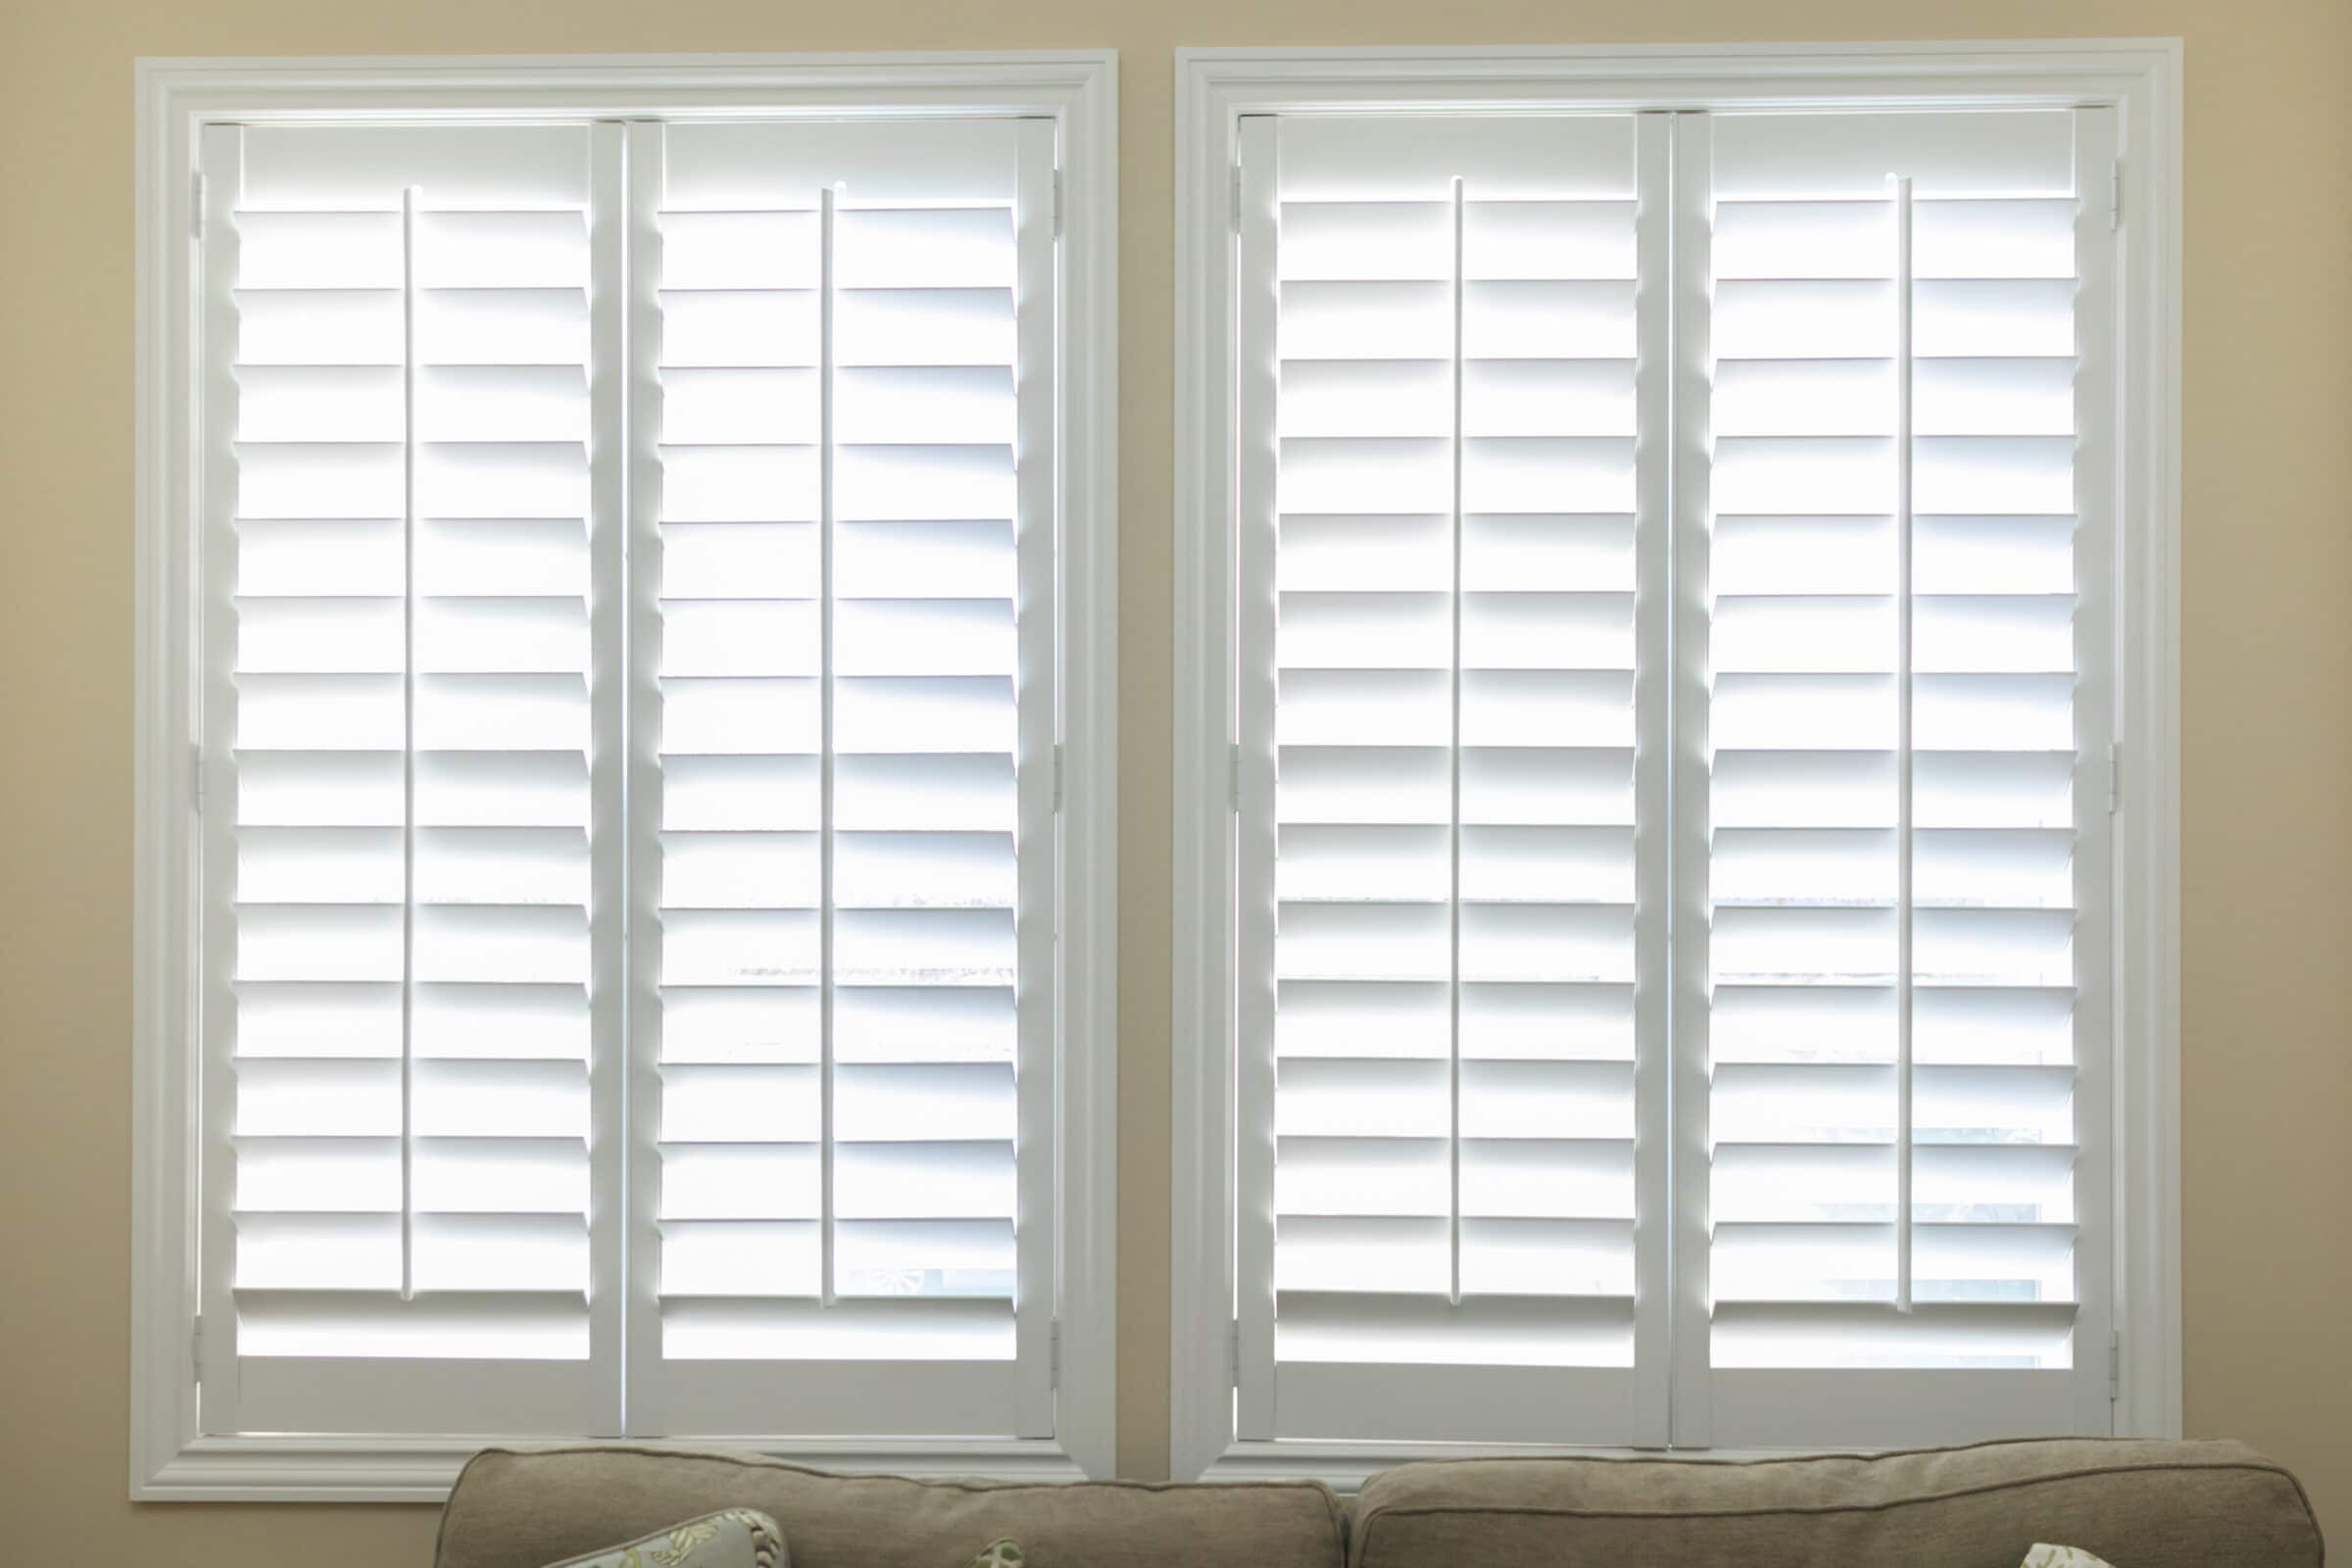 Shutters are generally more cost-effective than blinds